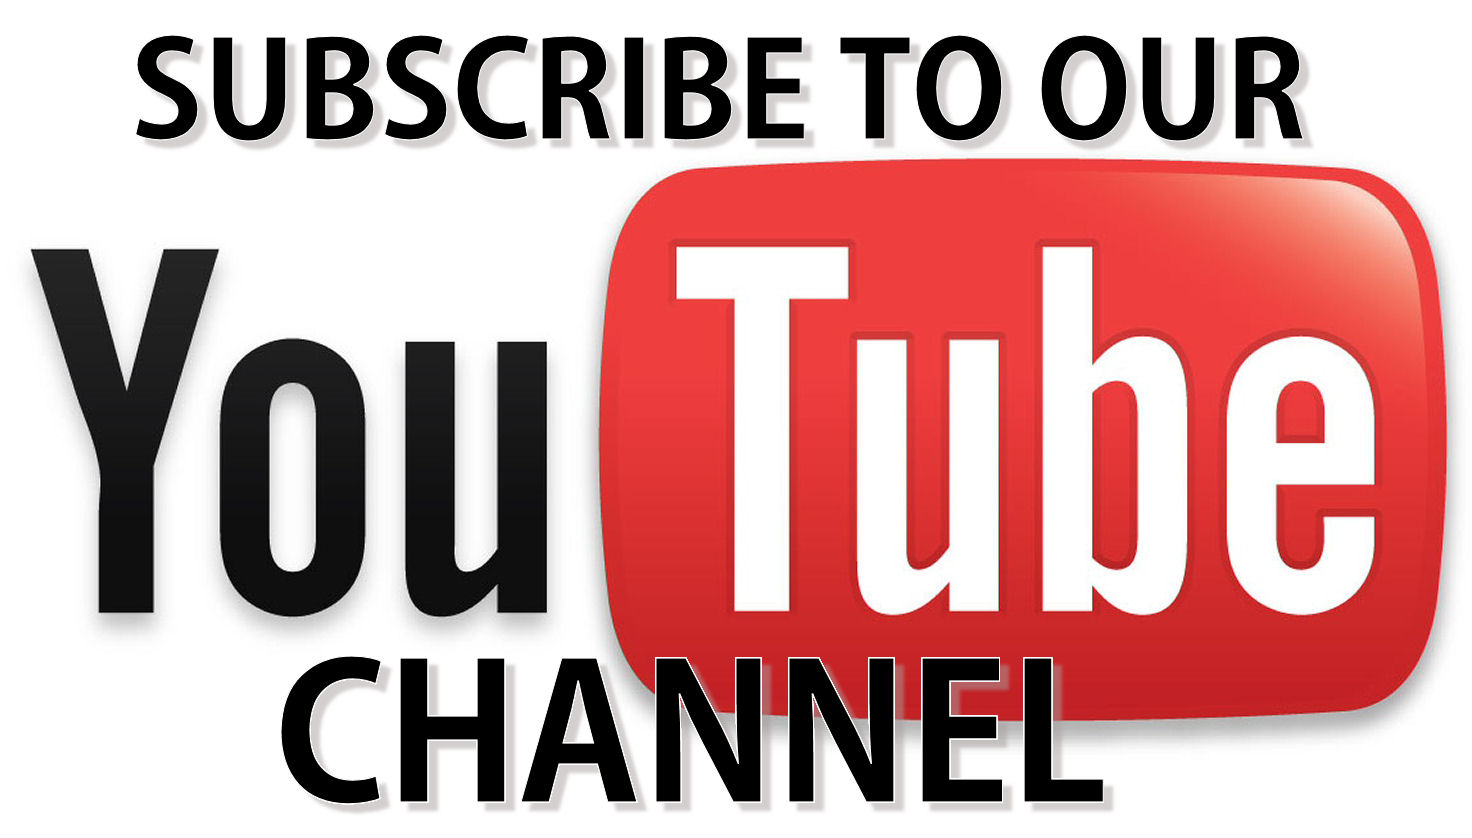 subscribe to our youtube channel theancientworld.ca